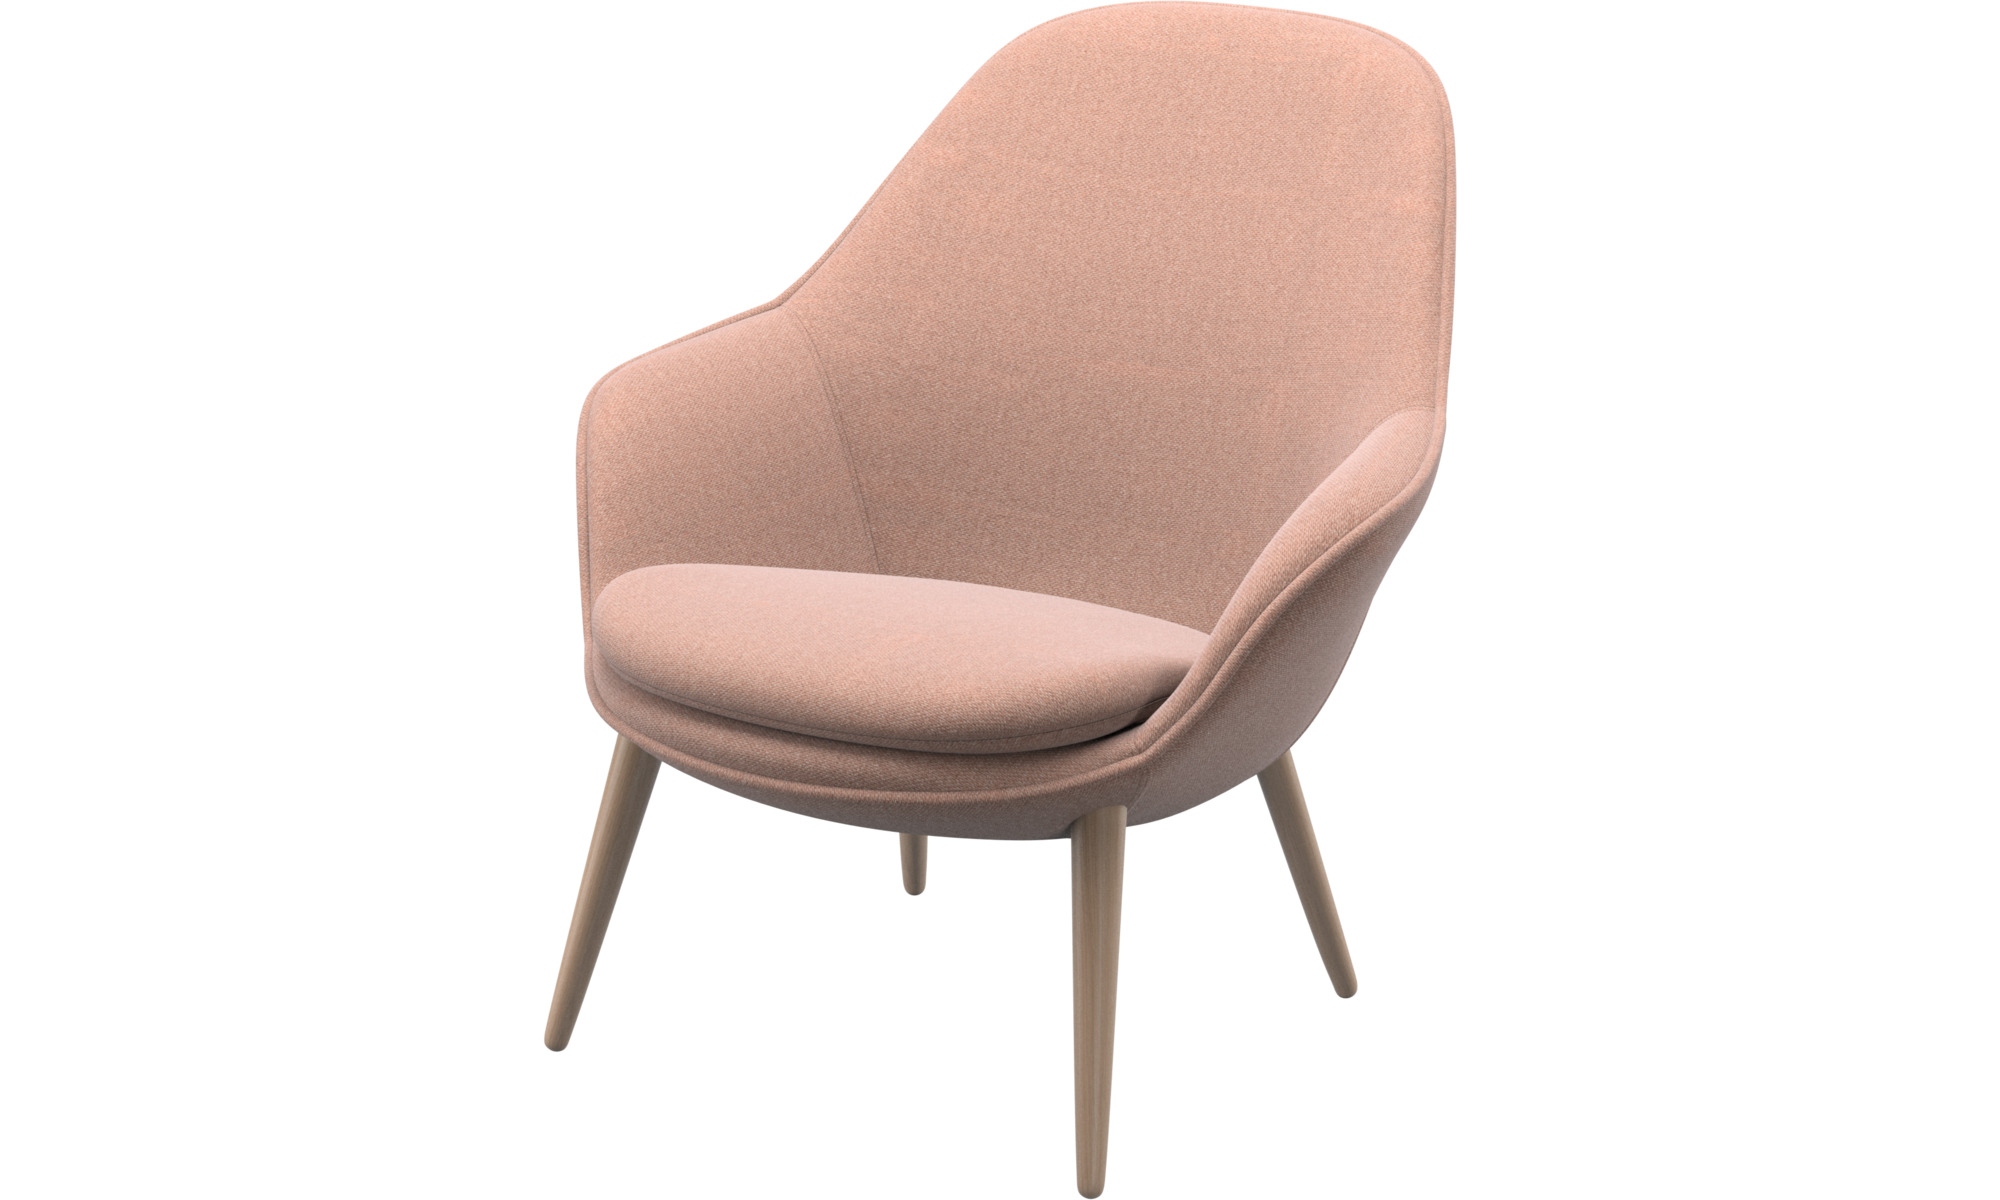 Armchairs - Adelaide living chair - Red - Fabric